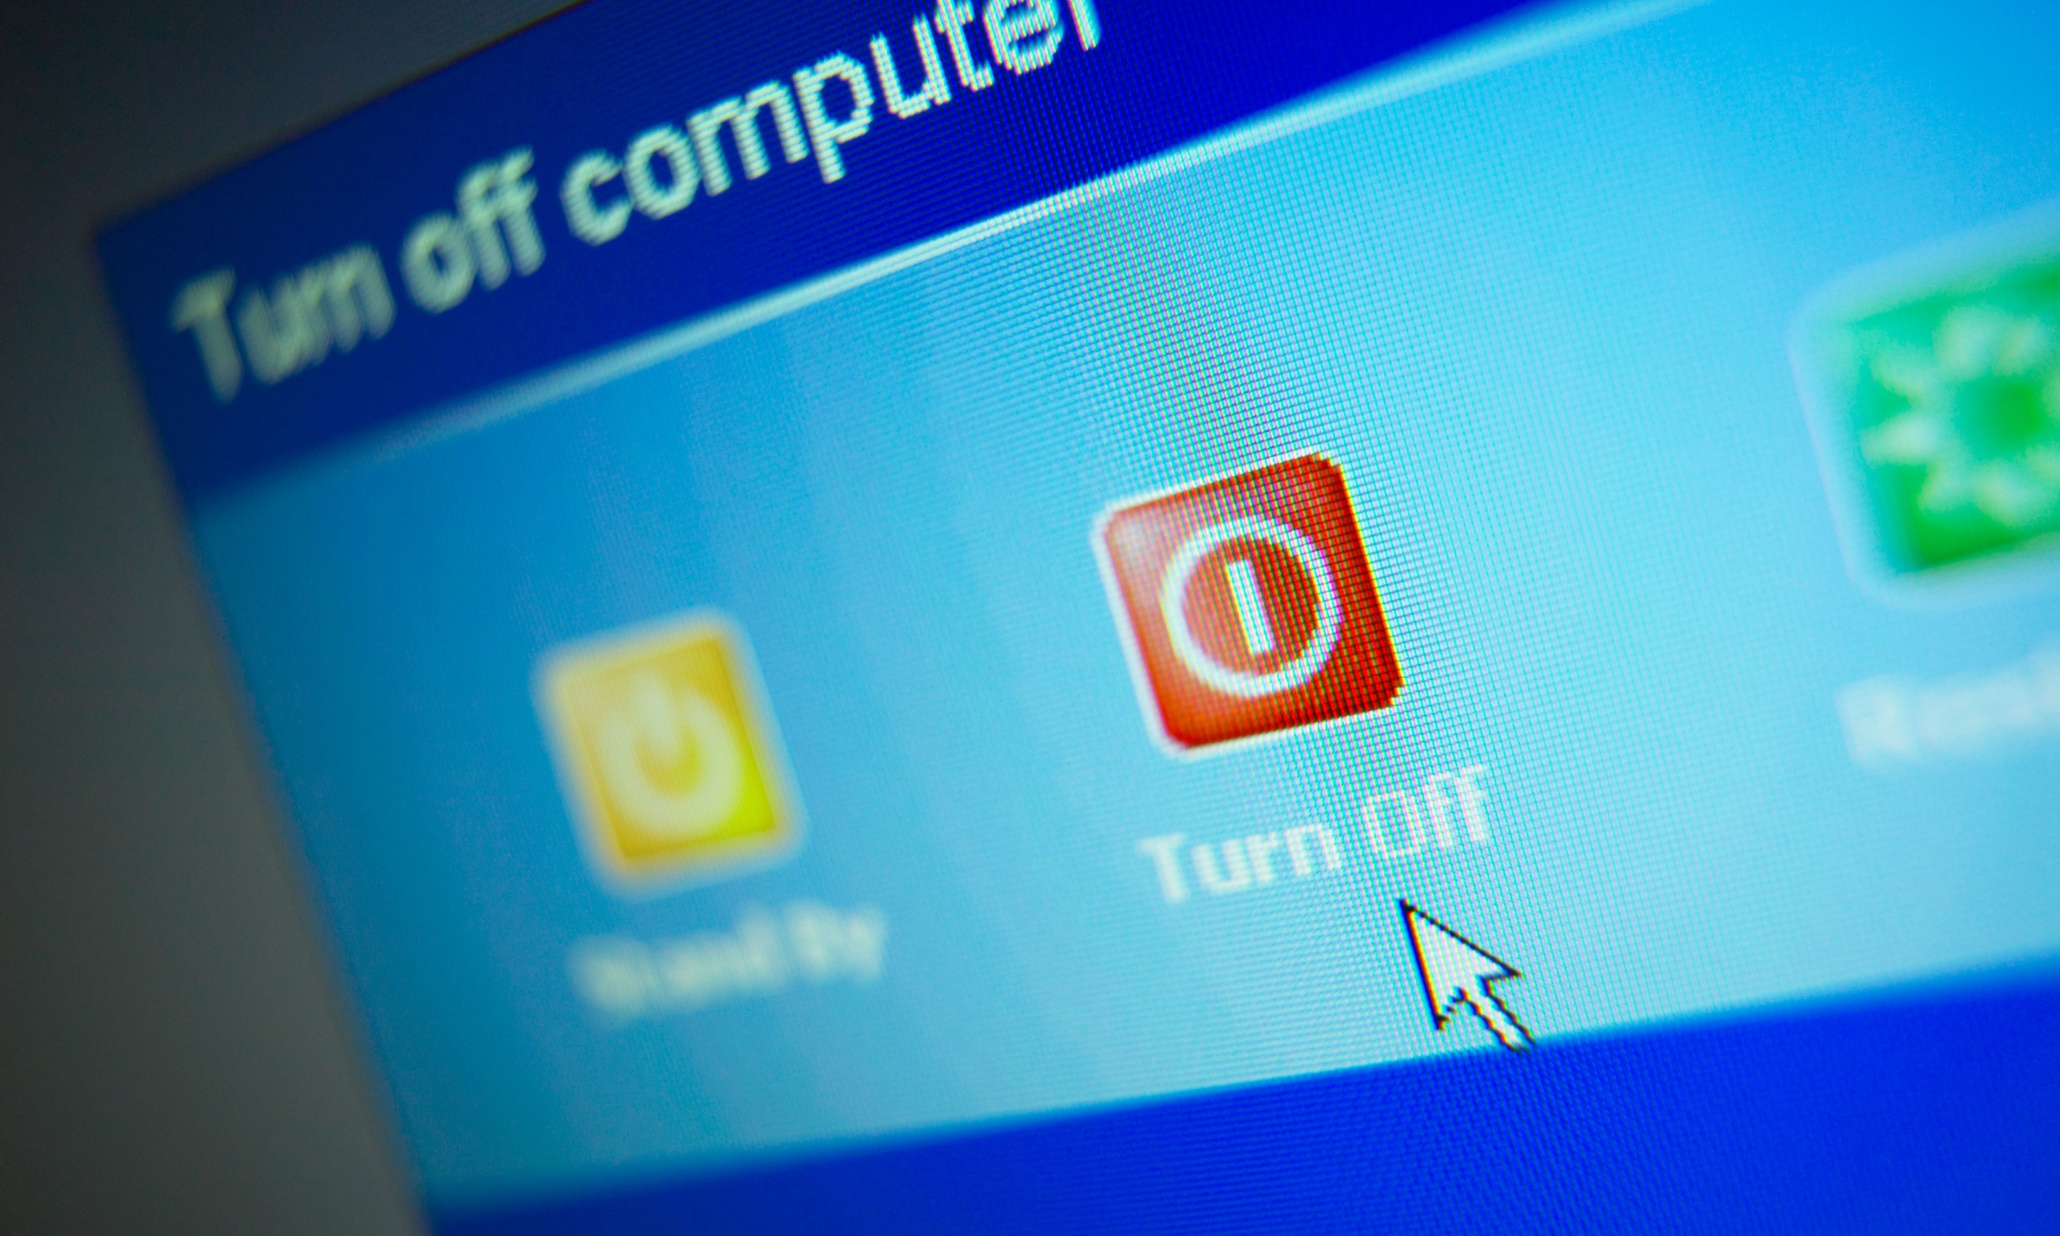 UK government PCs open to hackers as paid Windows XP support ends